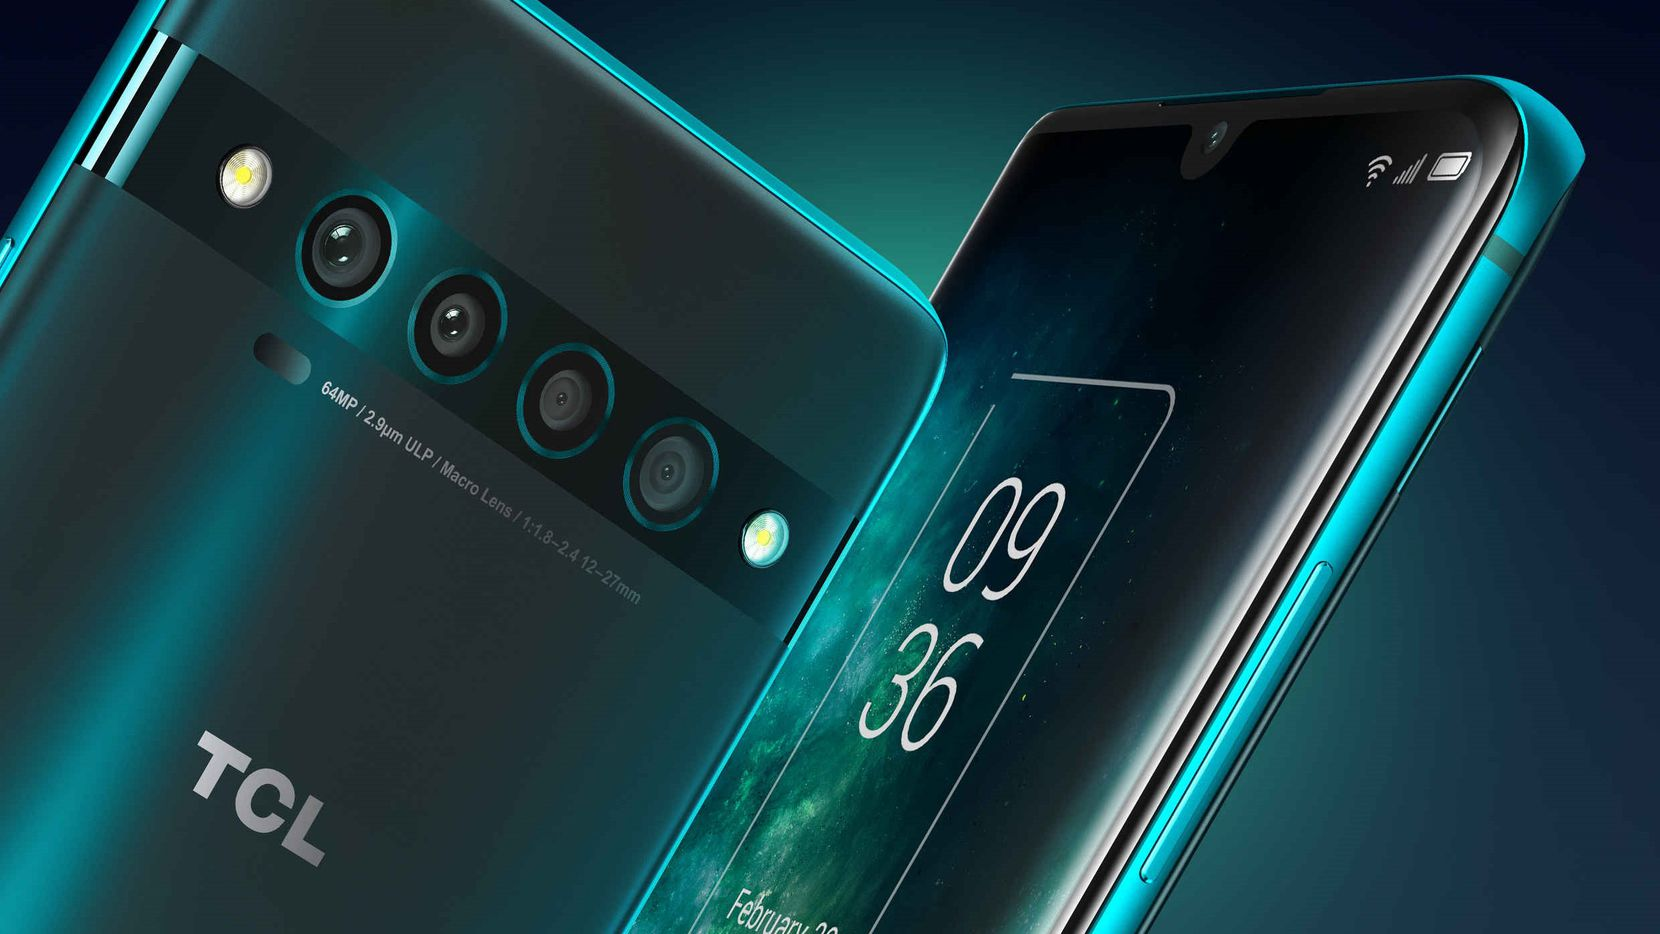 TCL 10 Pro certainly has the looks of a flagship phone.